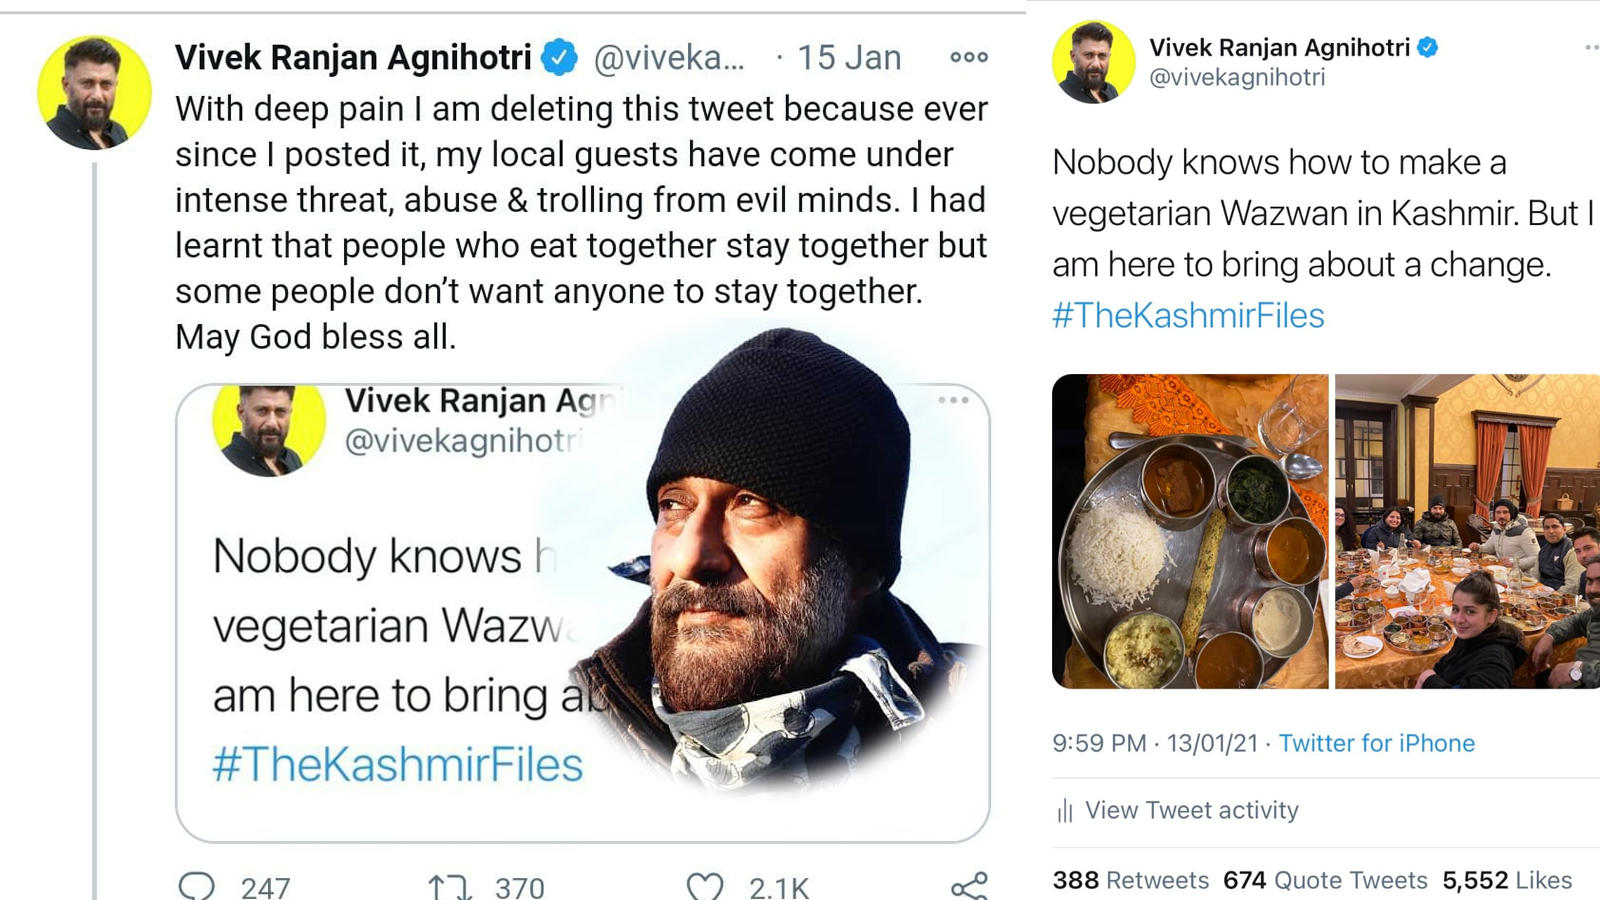 filmmaker-vivek-agnihotri-reacts-after-a-fatwa-gets-issued-against-him-in-kashmir-for-vegetarian-wazwan-tweet